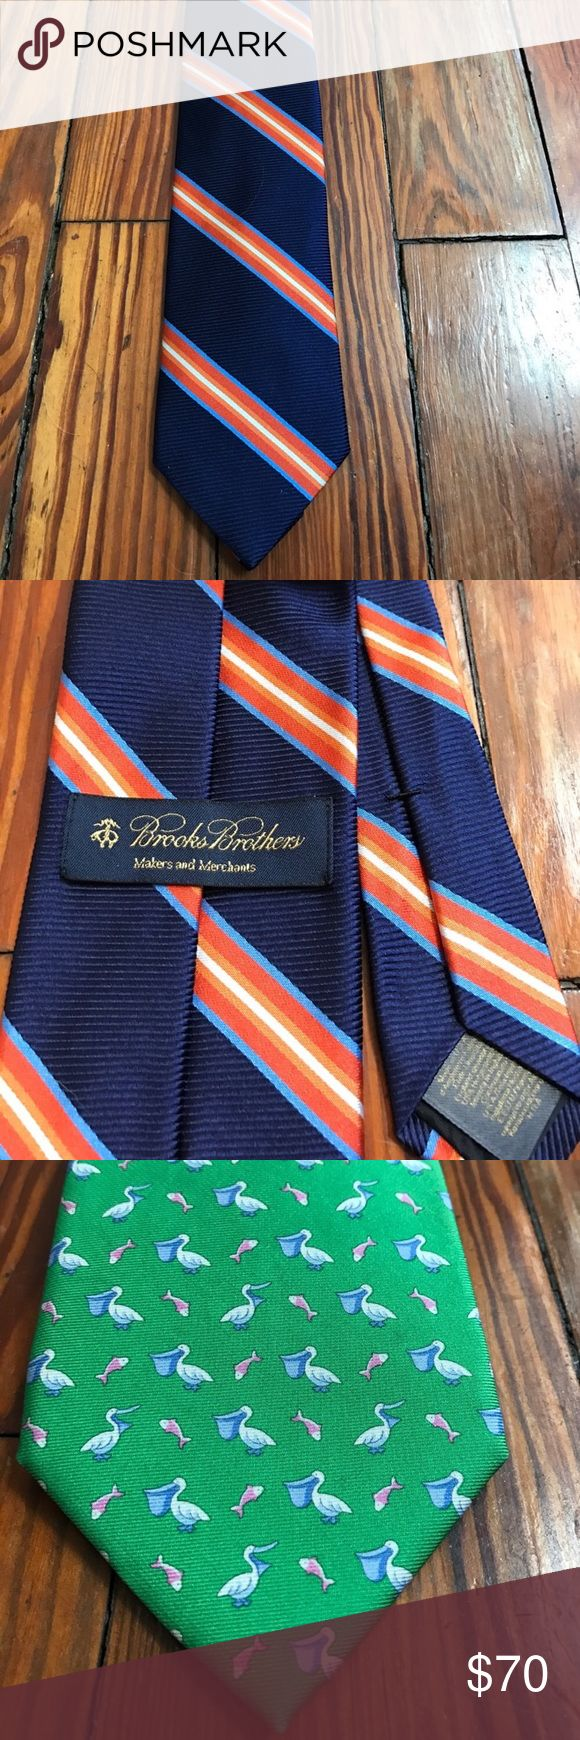 5 Brooks Brothers Ties - Bundle of 5 I am selling a bundle of five Brooks Brothers ties. Each of the ties is also listed individually in my closet, but I'm selling the bundle of all five at a much lower price. All reasonable offers considered. Brooks Brothers Accessories Ties